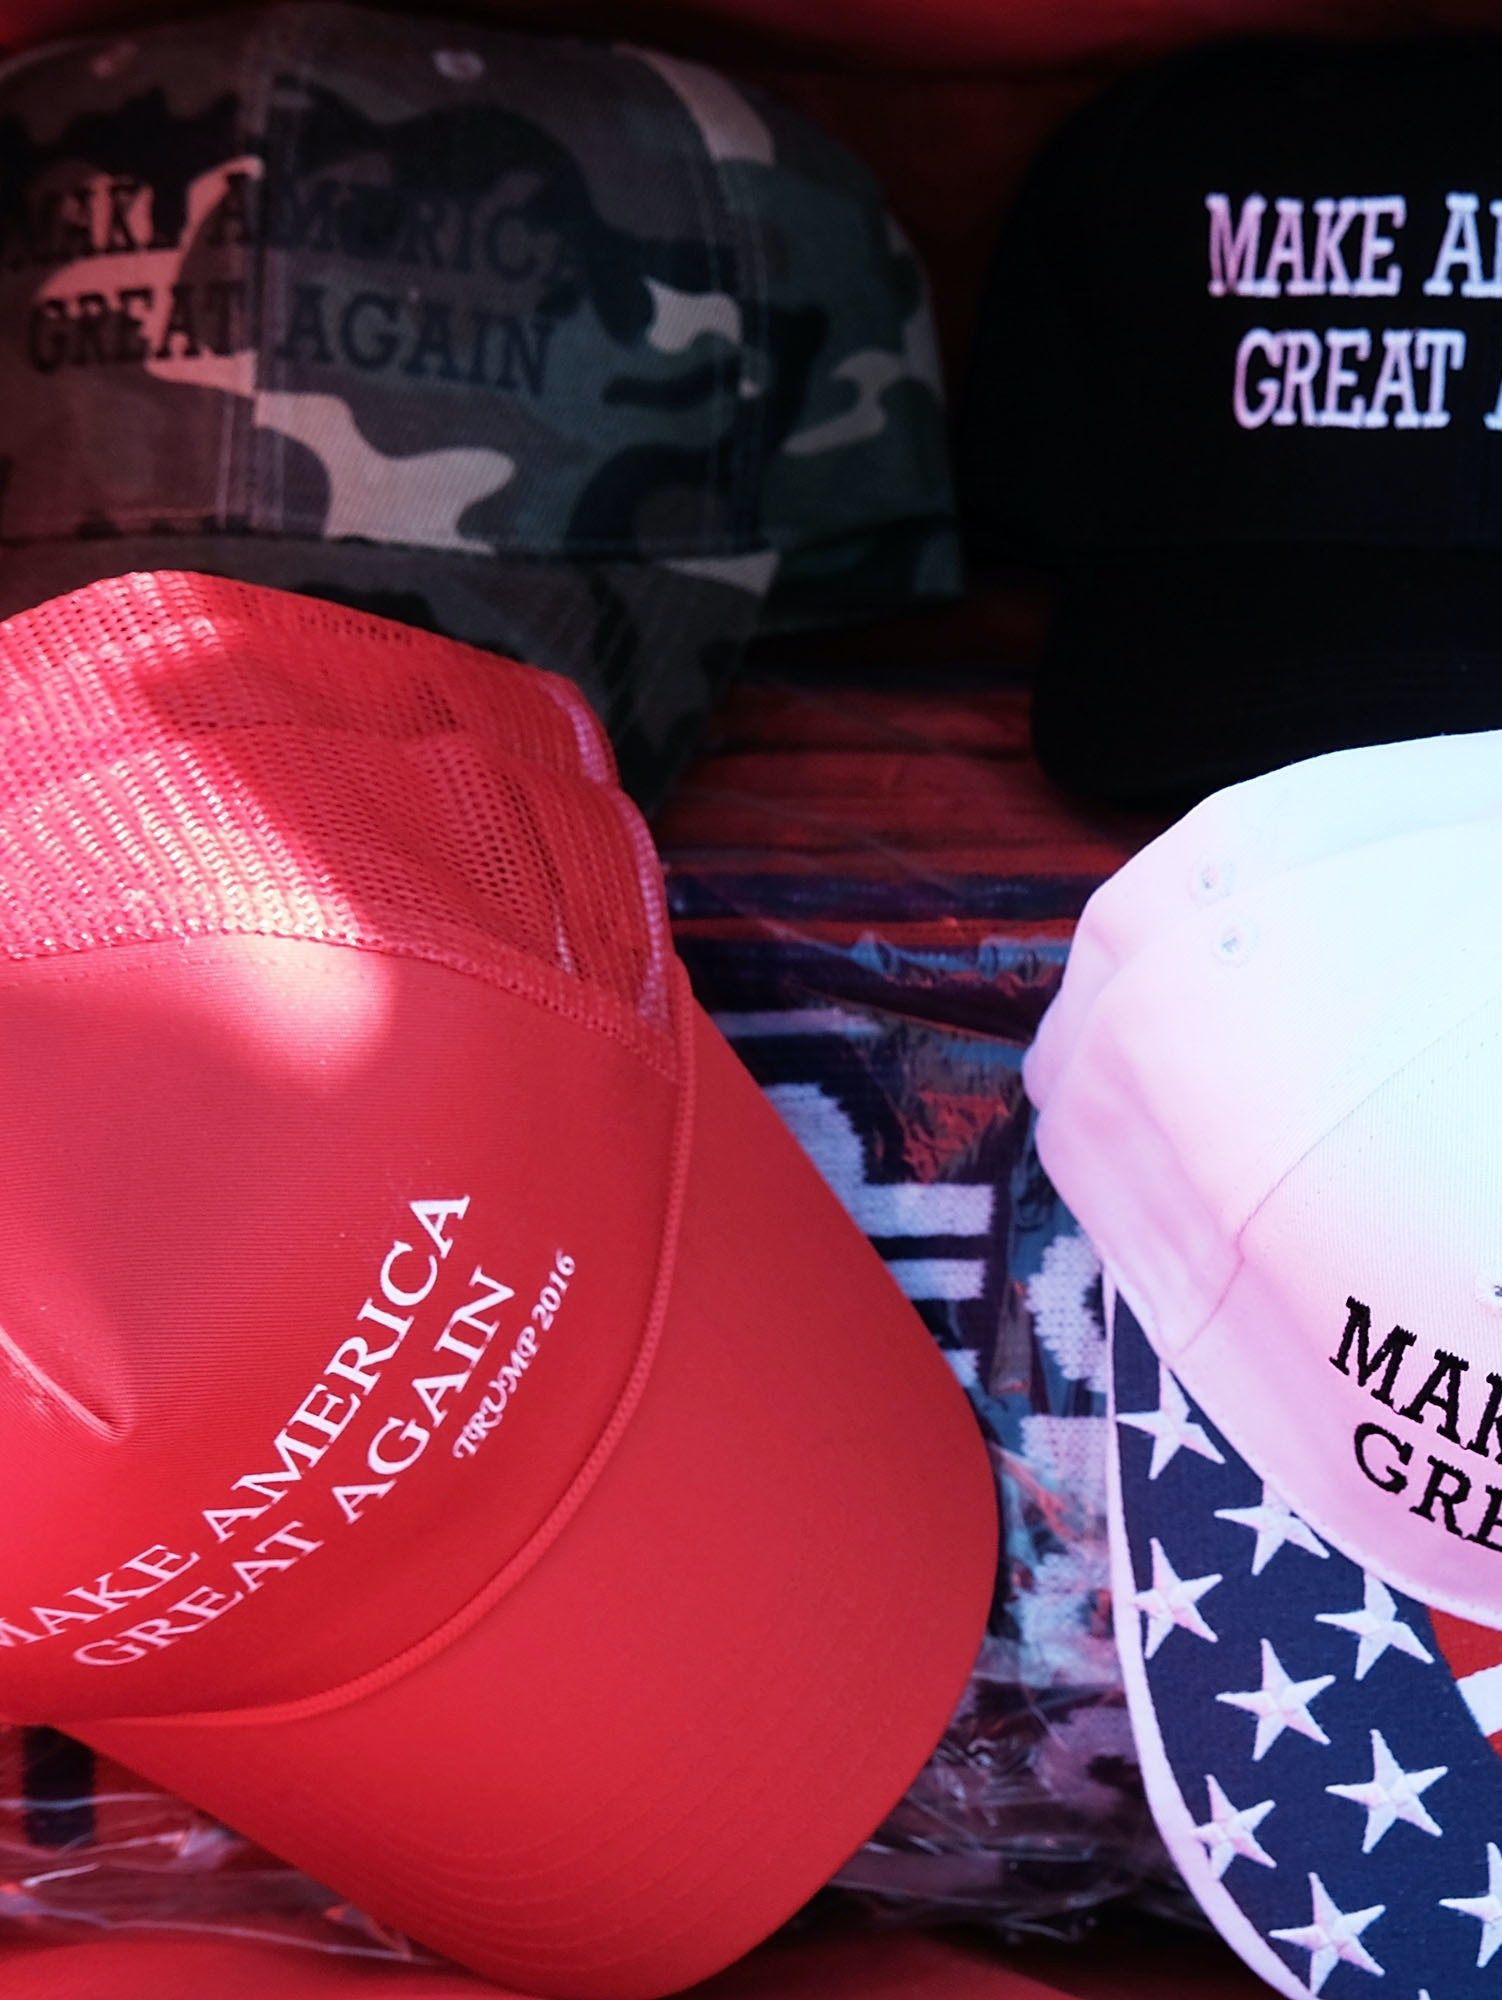 HERSHEY, PA - NOVEMBER 04:  Donald Trump 'Make America Great Again' hats are sold at a rally on November 4, 2016 in Hershey, Pennsylvania. Days before the presidential election, both Hillary Clinton and Donald Trump make their final pitches to the American people, with recent polls show a tightening race in crucial swing states.  (Photo by Spencer Platt/Getty Images)